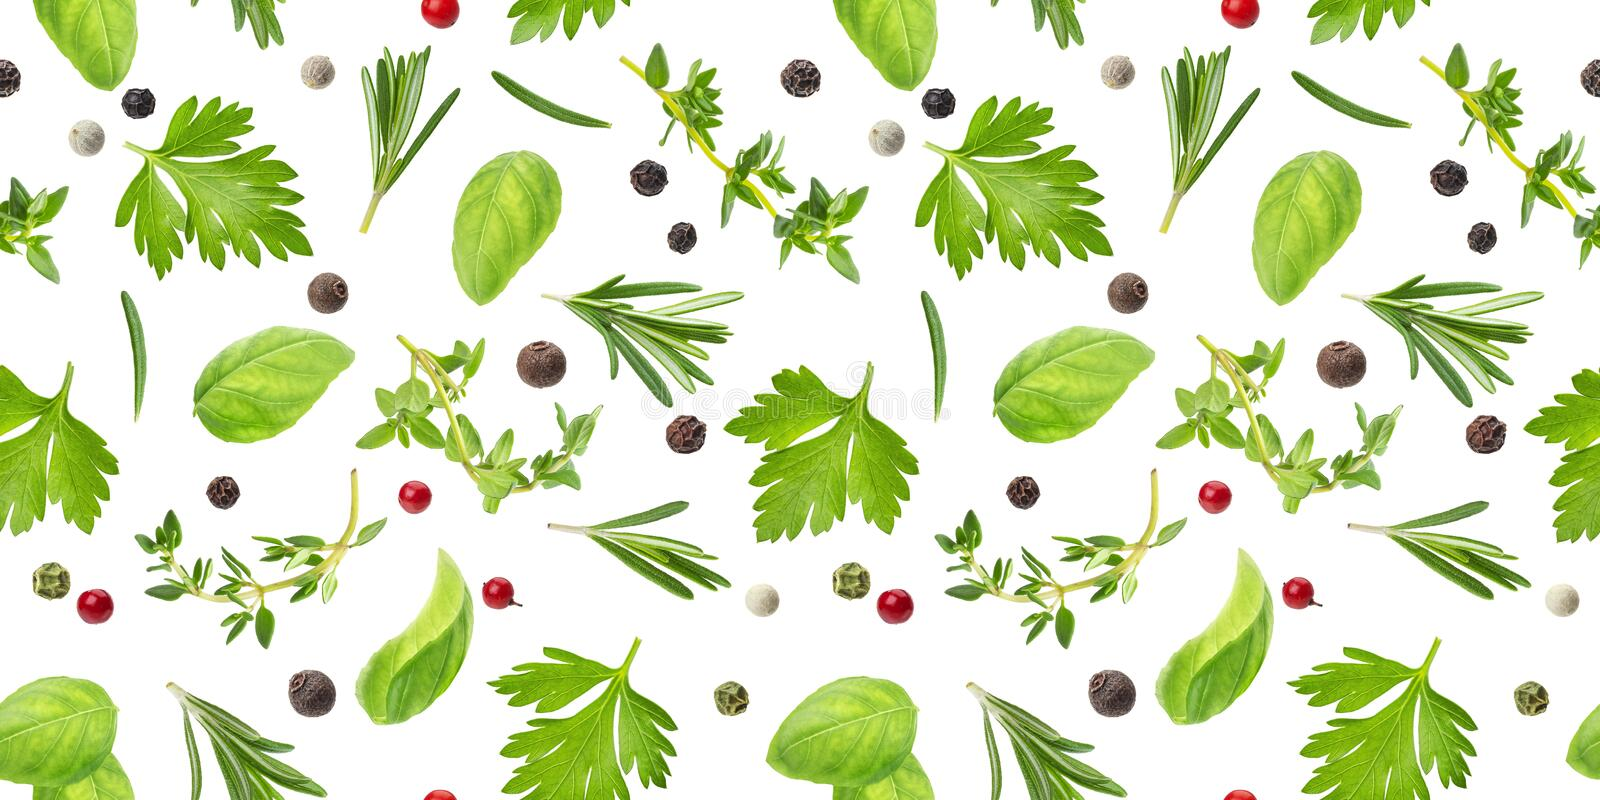 Different spices and herbs seamless pattern isolated on white background, top view royalty free stock photography